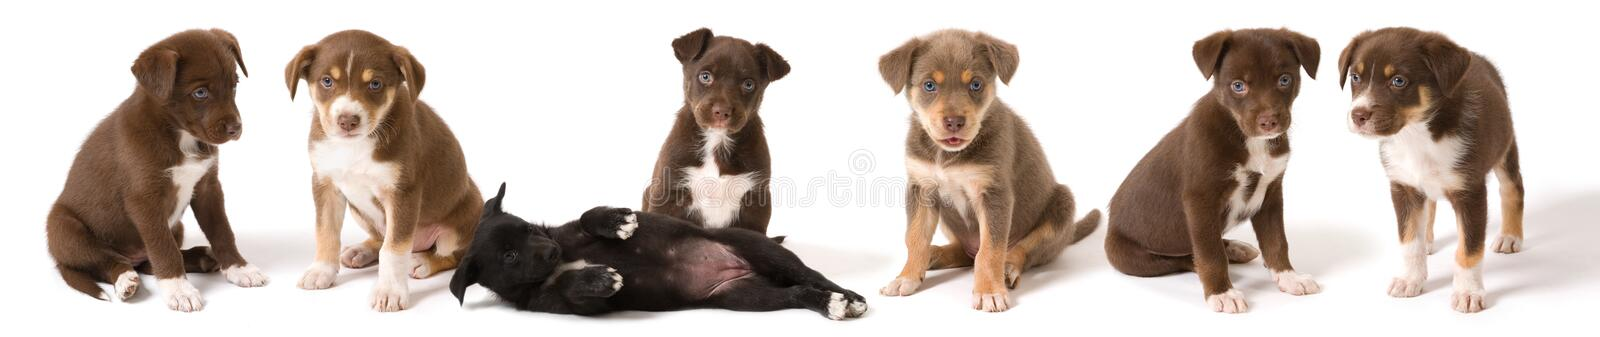 Puppies Lined-up royalty free stock image